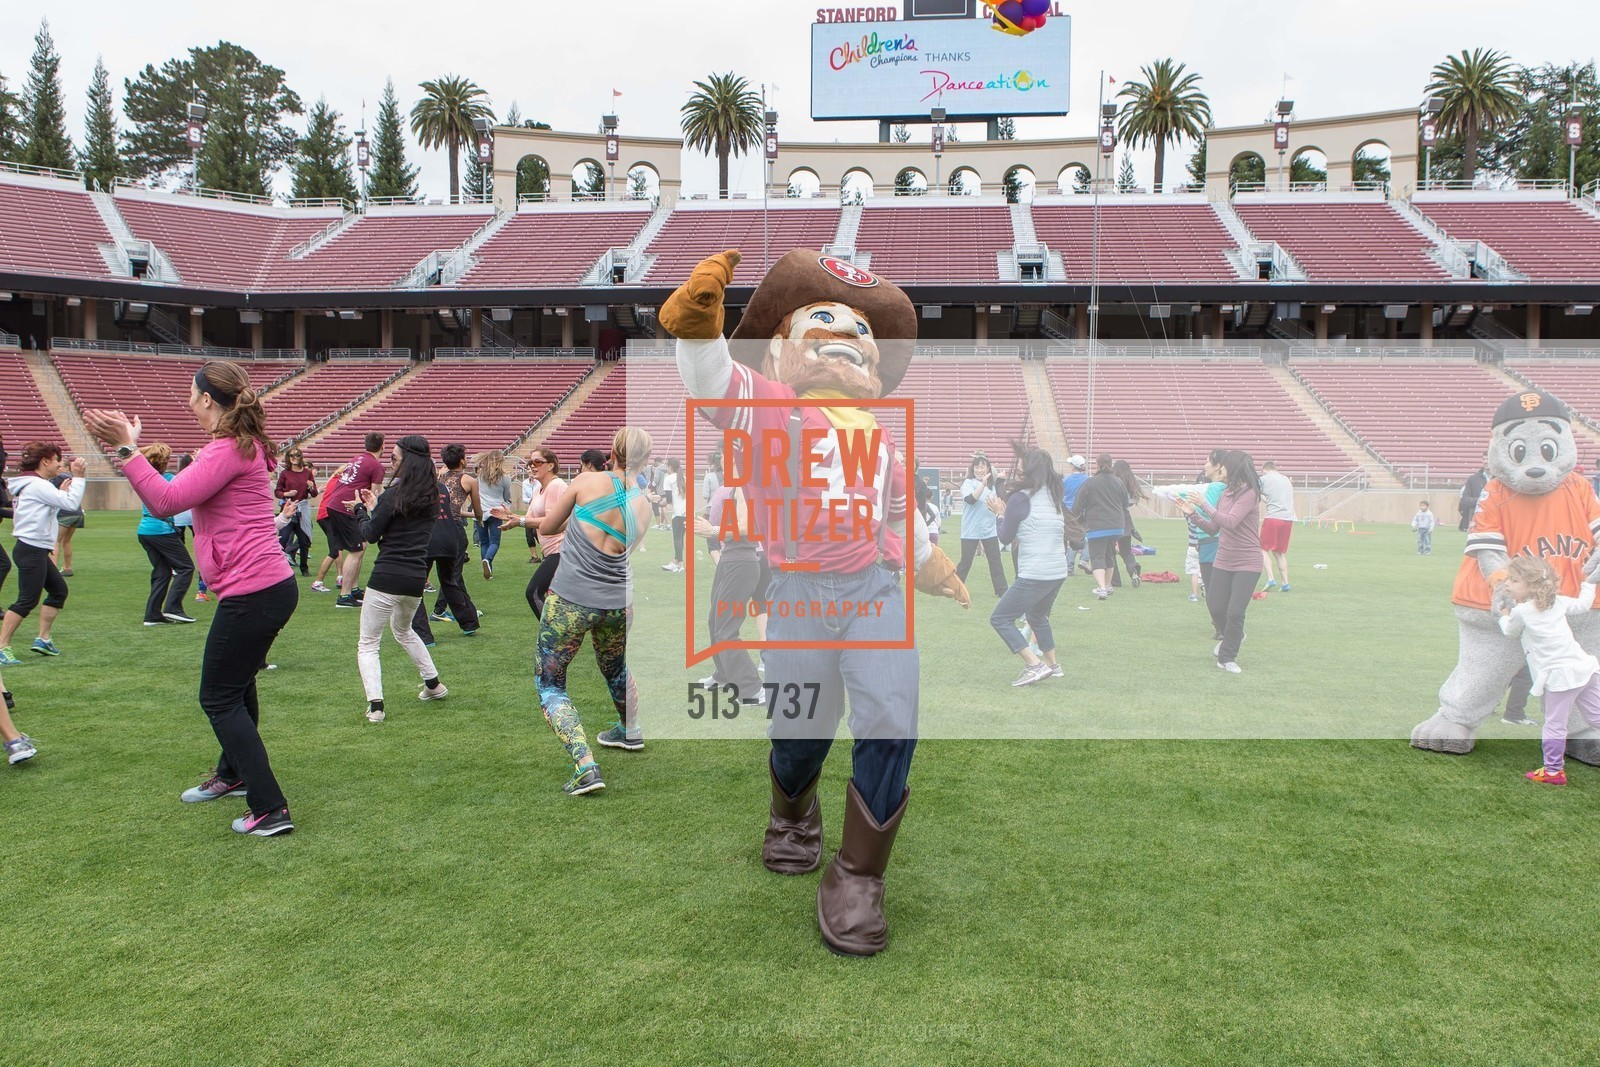 Atmosphere, Children's Champions, US, May 17th, 2015,Drew Altizer, Drew Altizer Photography, full-service agency, private events, San Francisco photographer, photographer california